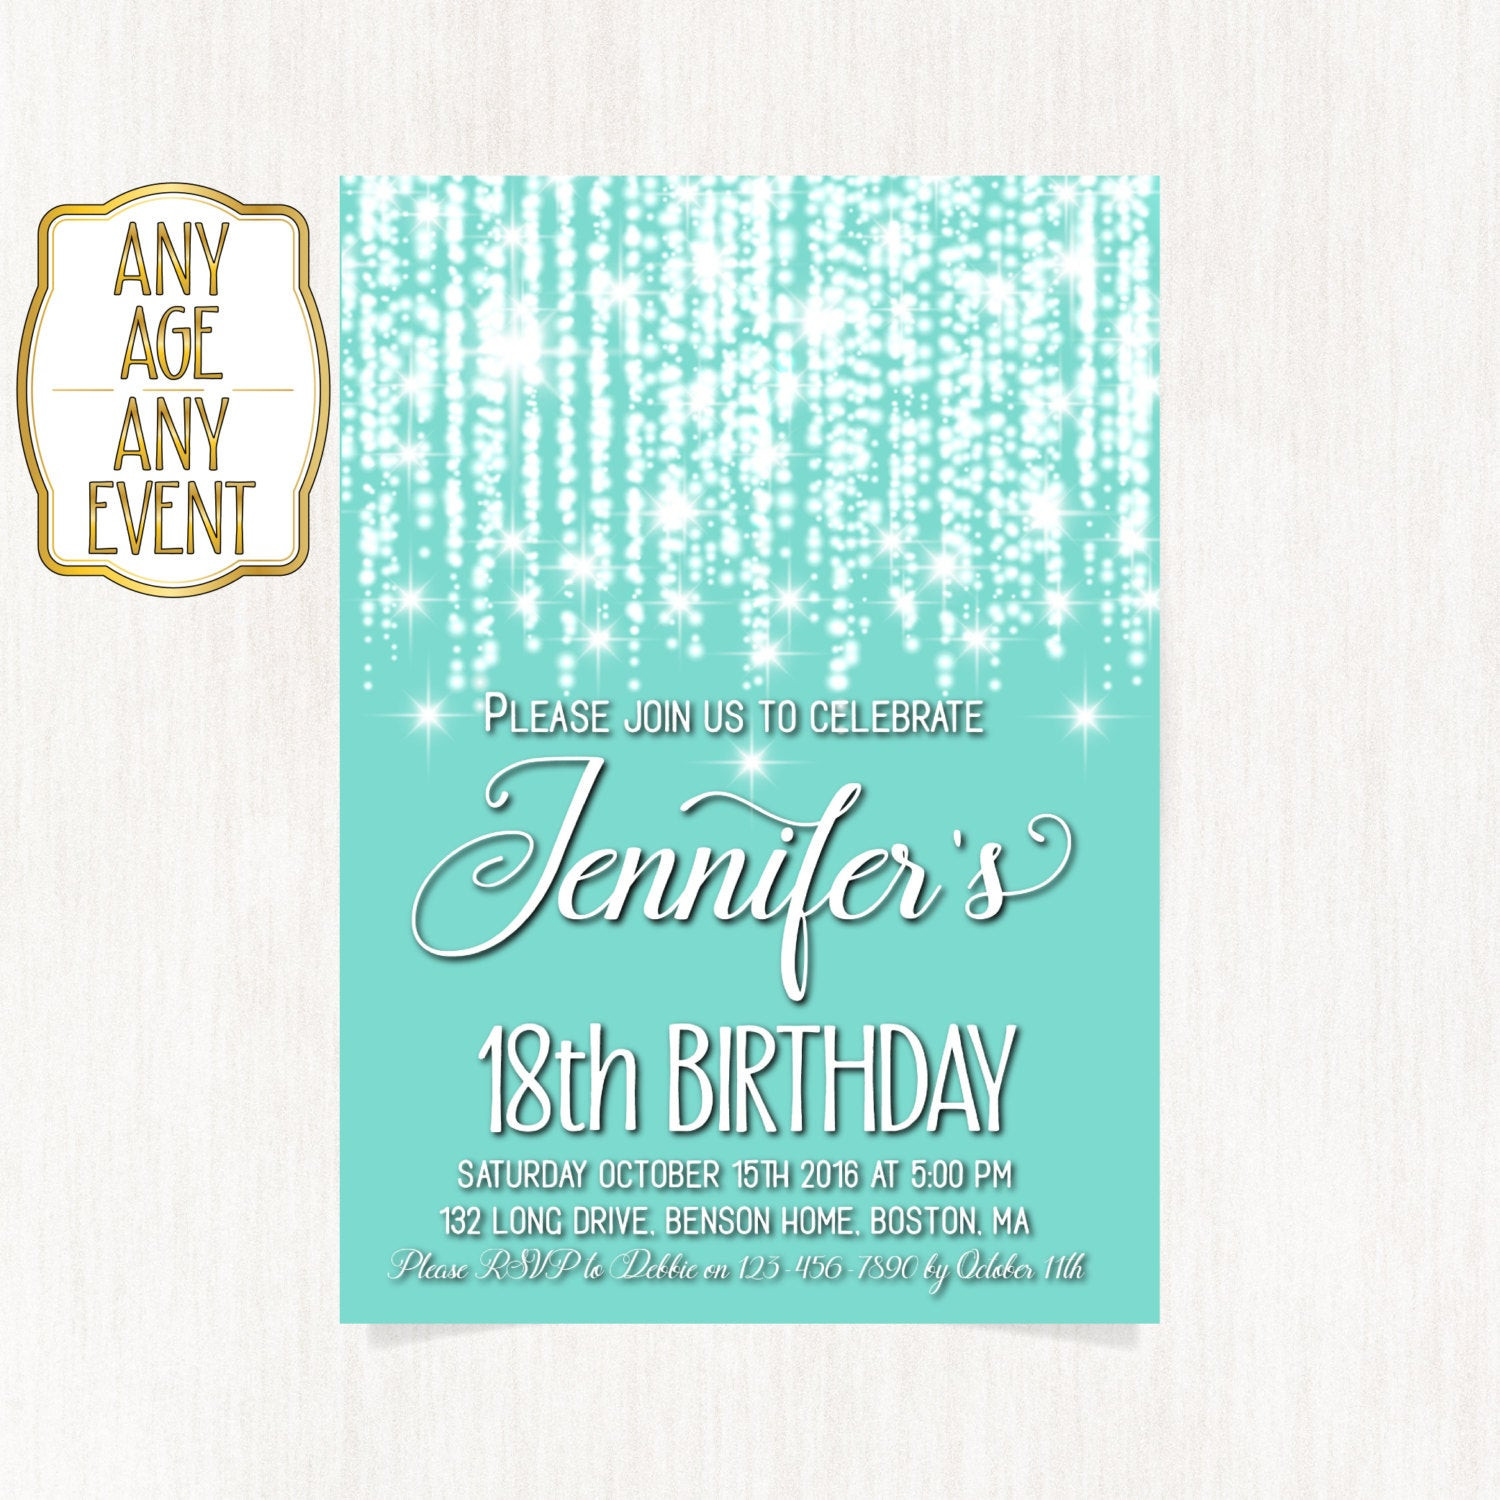 Best ideas about 18th Birthday Party Invitations . Save or Pin 18th birthday invitation Luxury invitation Birthday party Now.